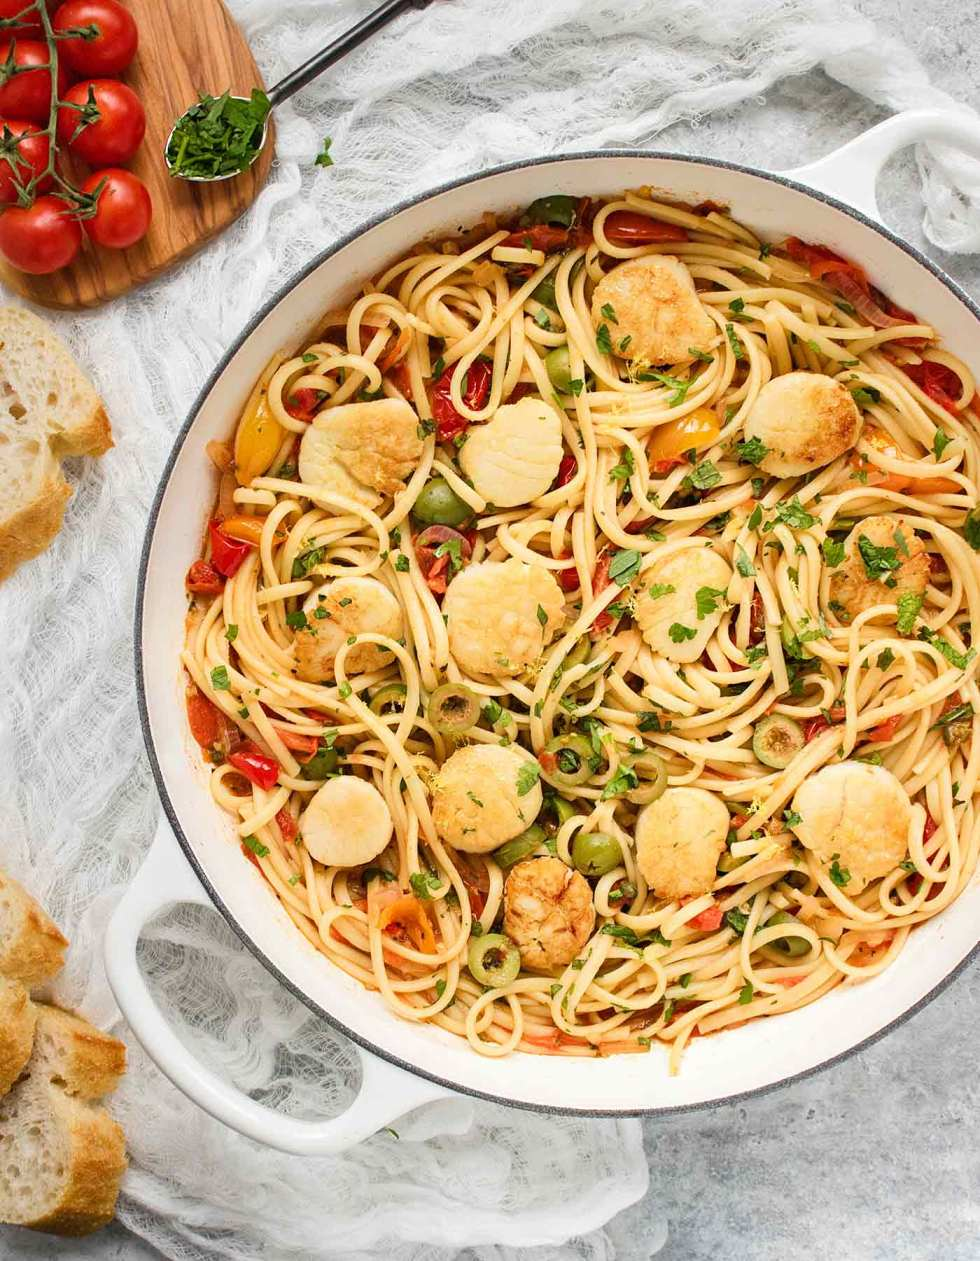 White saute pan filled with Mediterranean Scallop Linguine